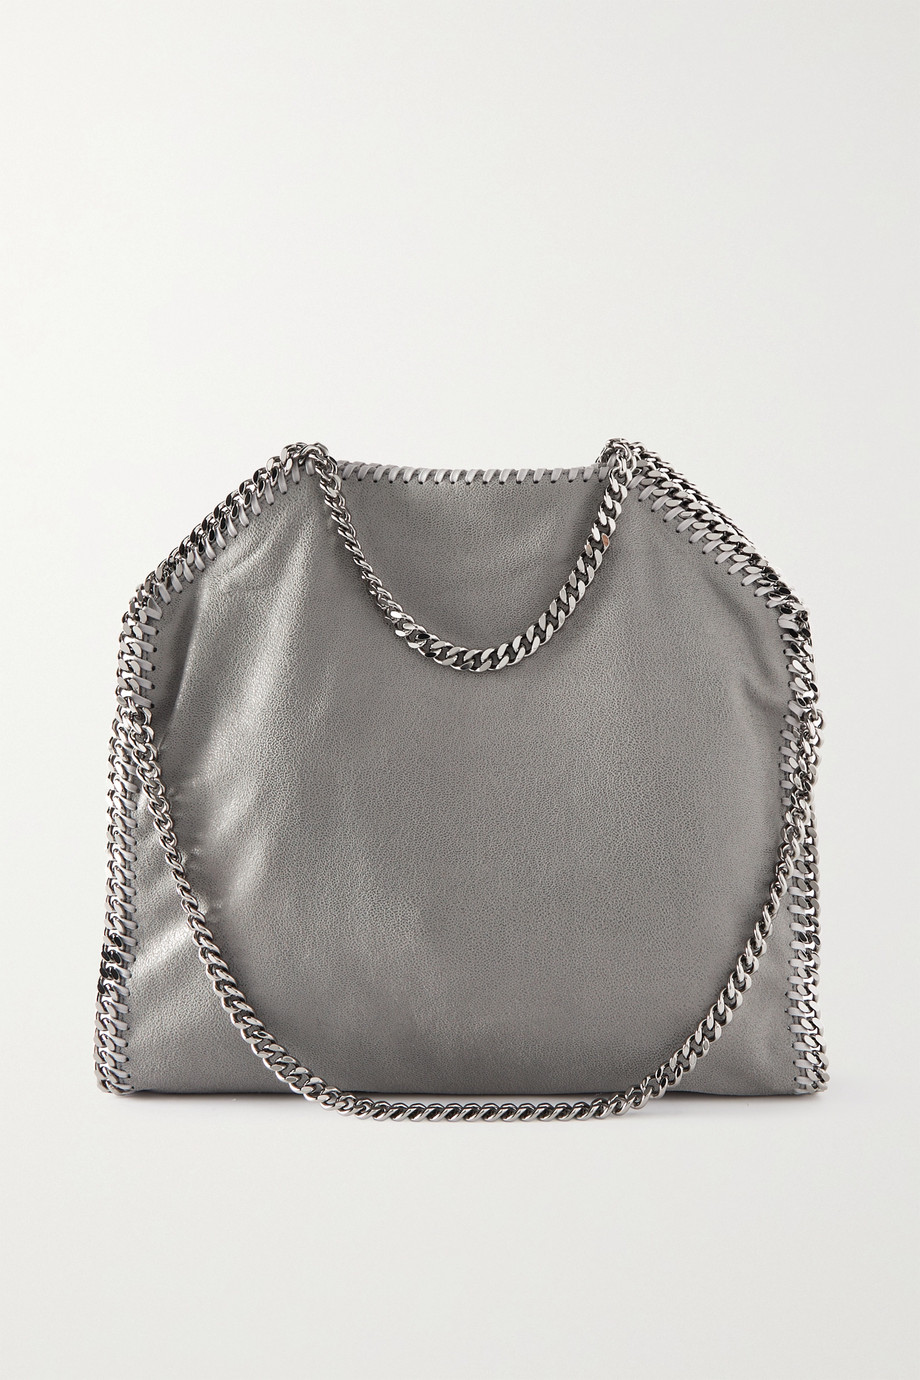 Stella Mccartney The Falabella Medium Faux Brushed-Leather Shoulder Bag, Light Gray, Women's, Size: One Size